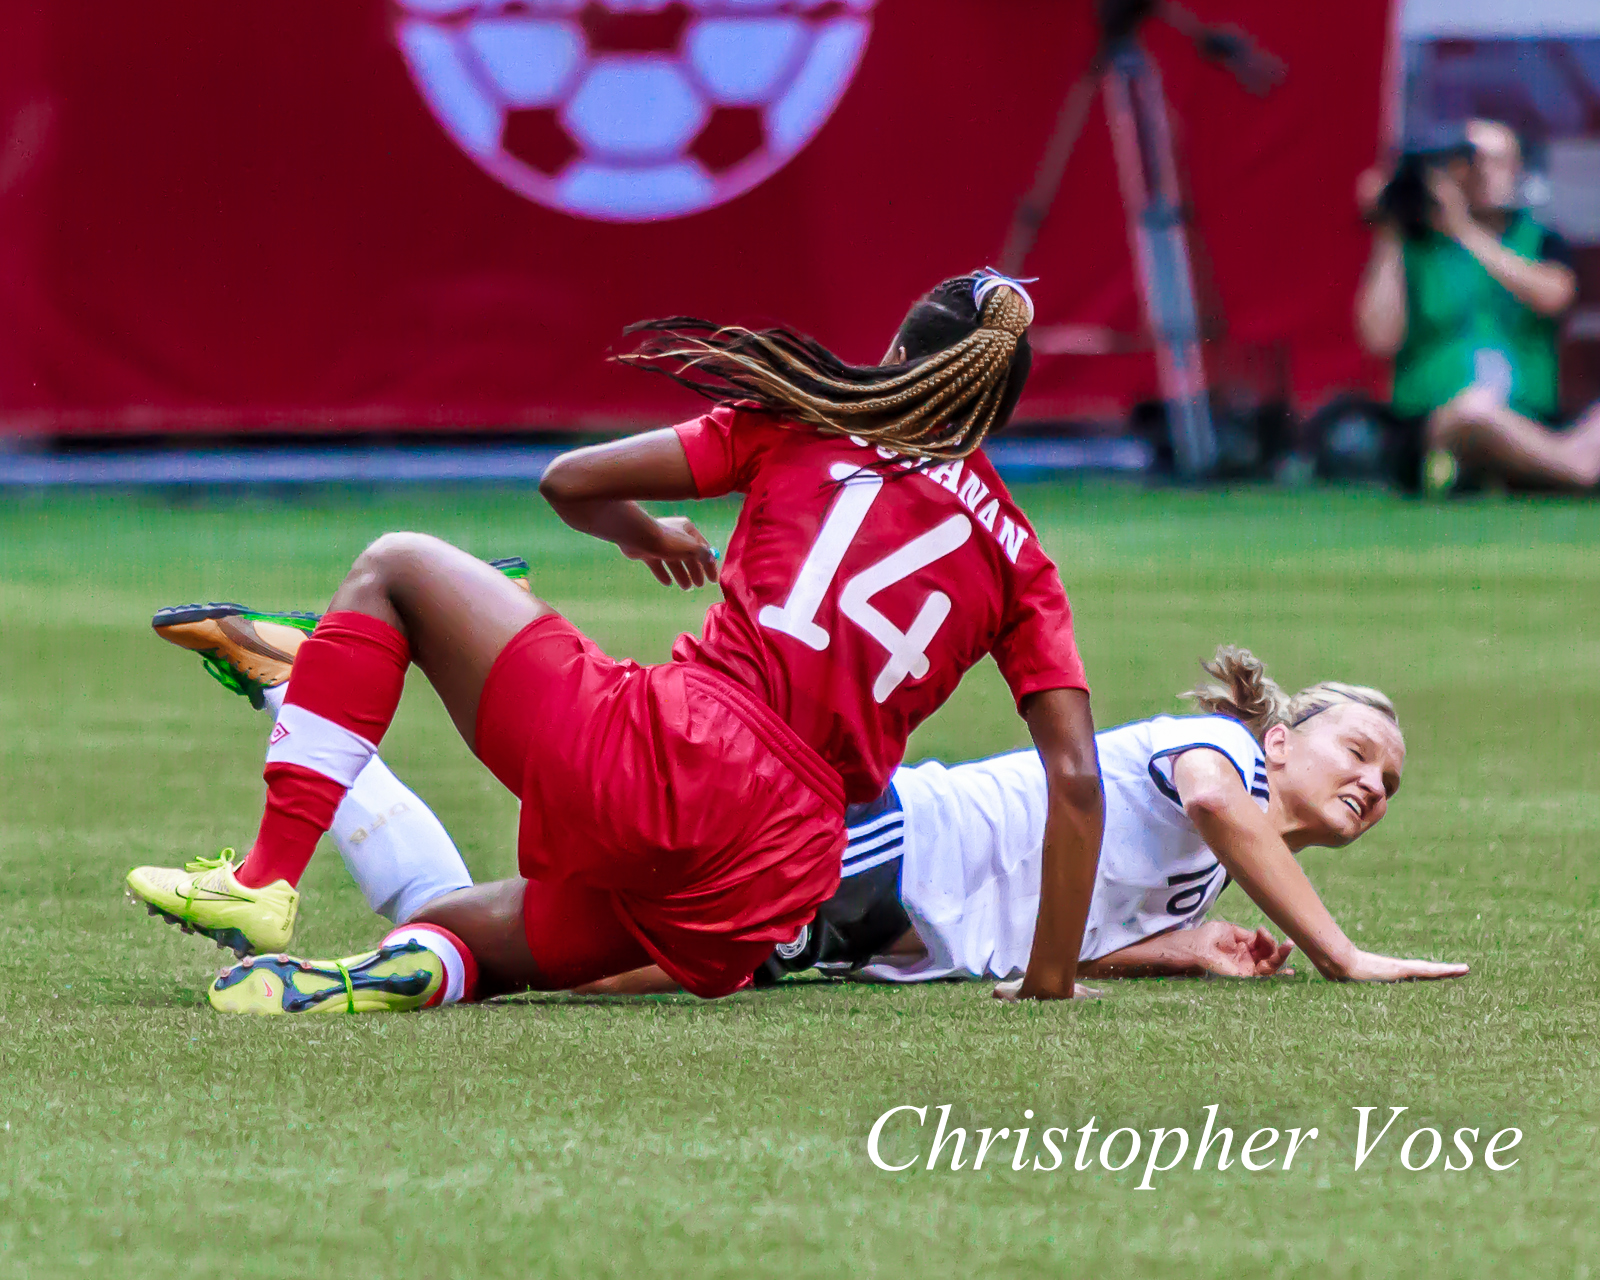 2014-06-18 Kadeisha Buchanan and Alexandra Popp.jpg